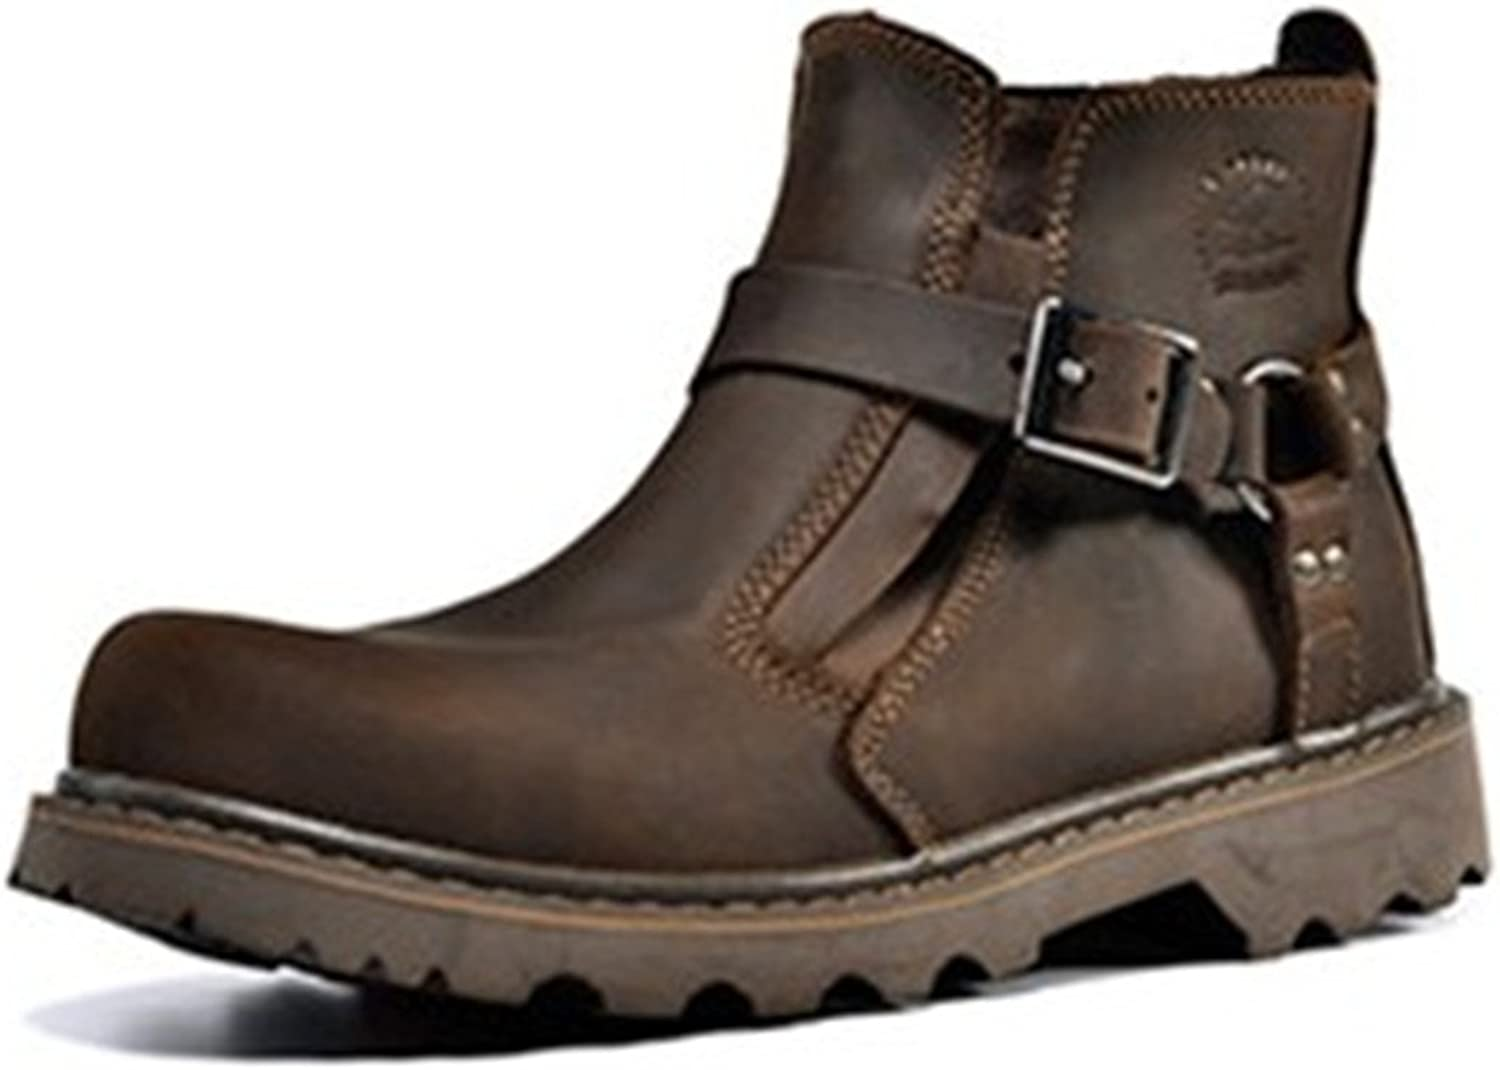 BININBOX Men's Leather shoes Retro Hasp Engineer Boots Working Martin Boots